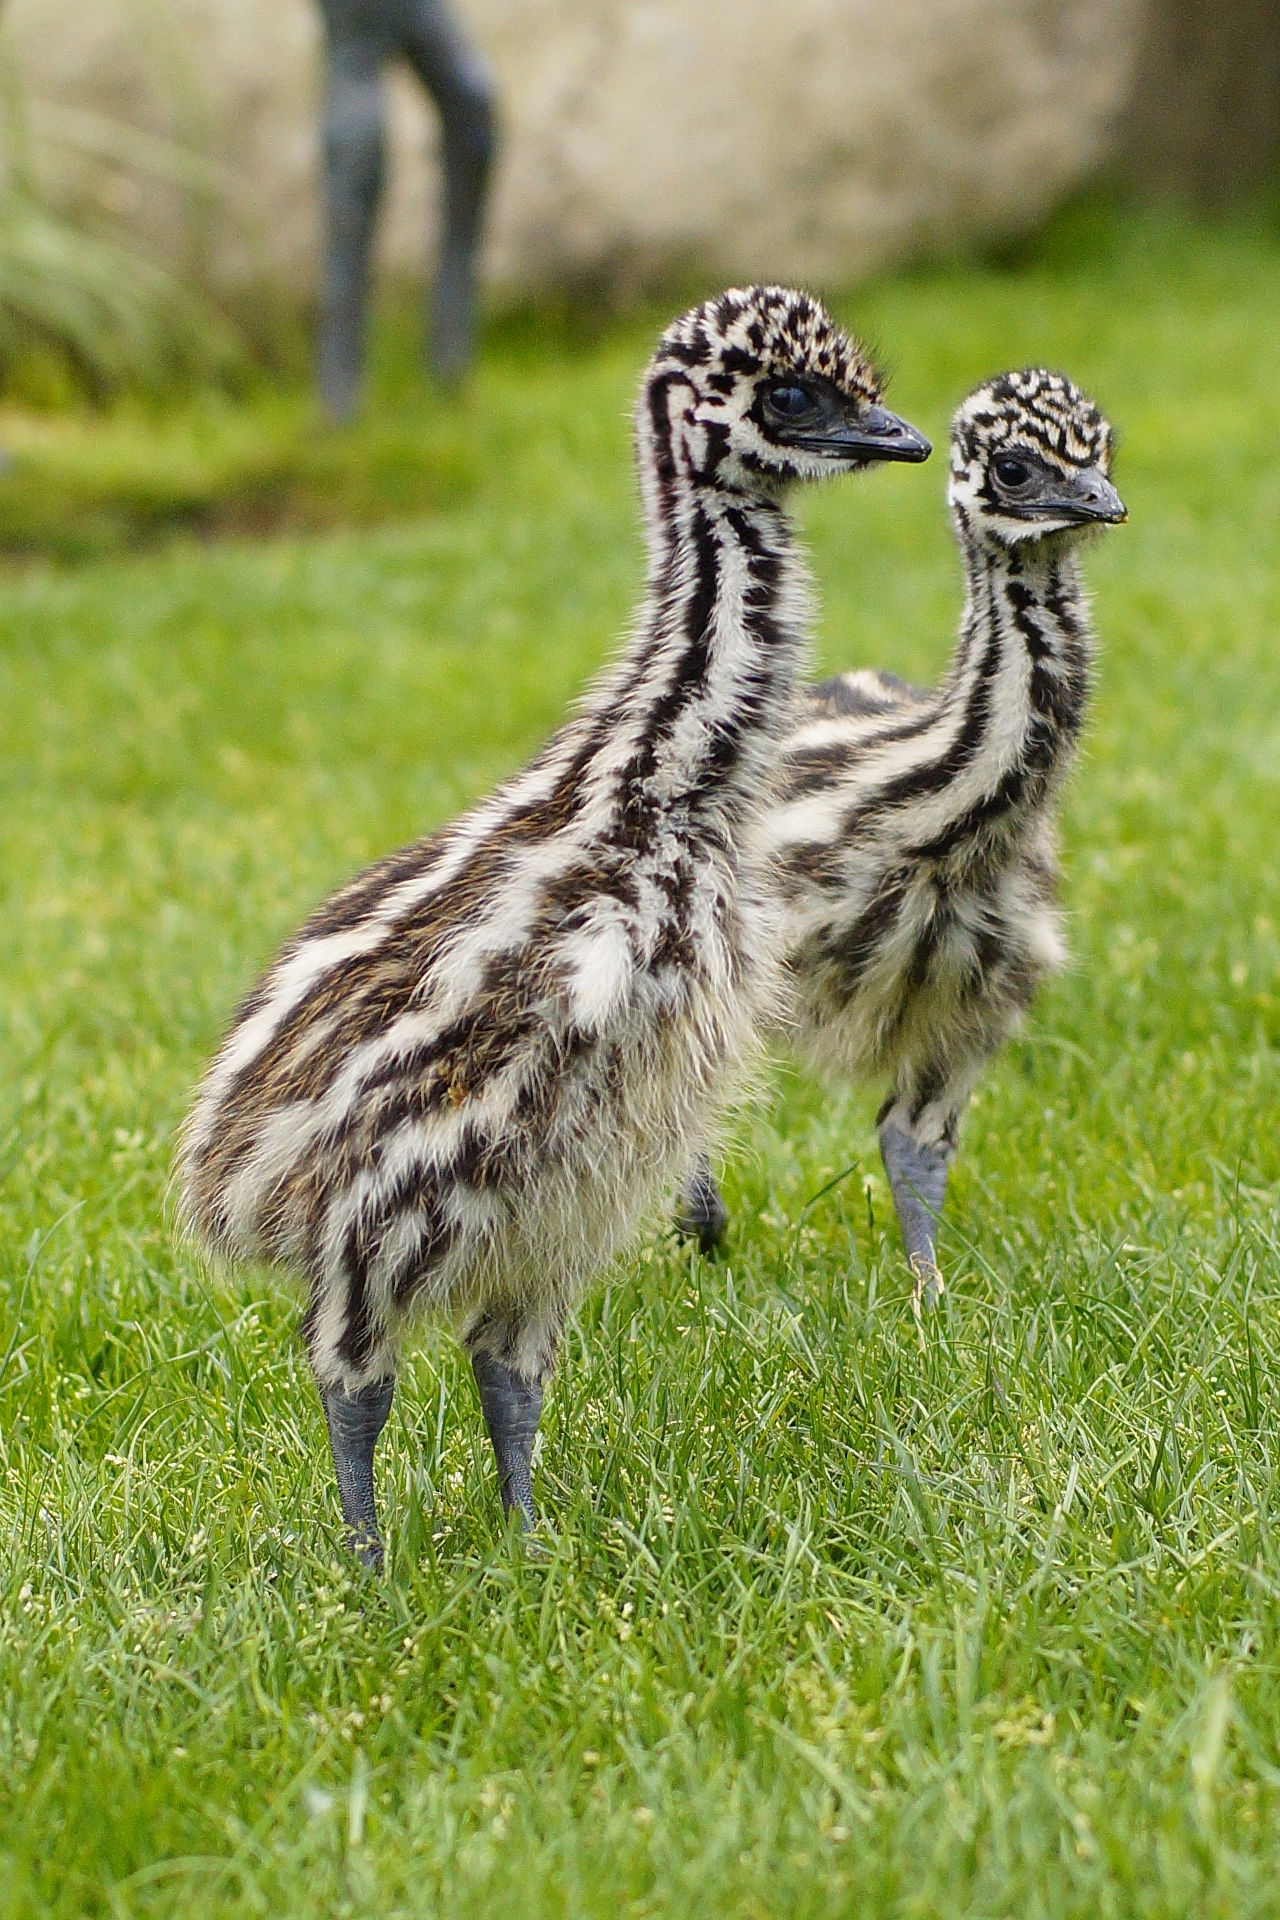 Two emu chicks standing in low green grass